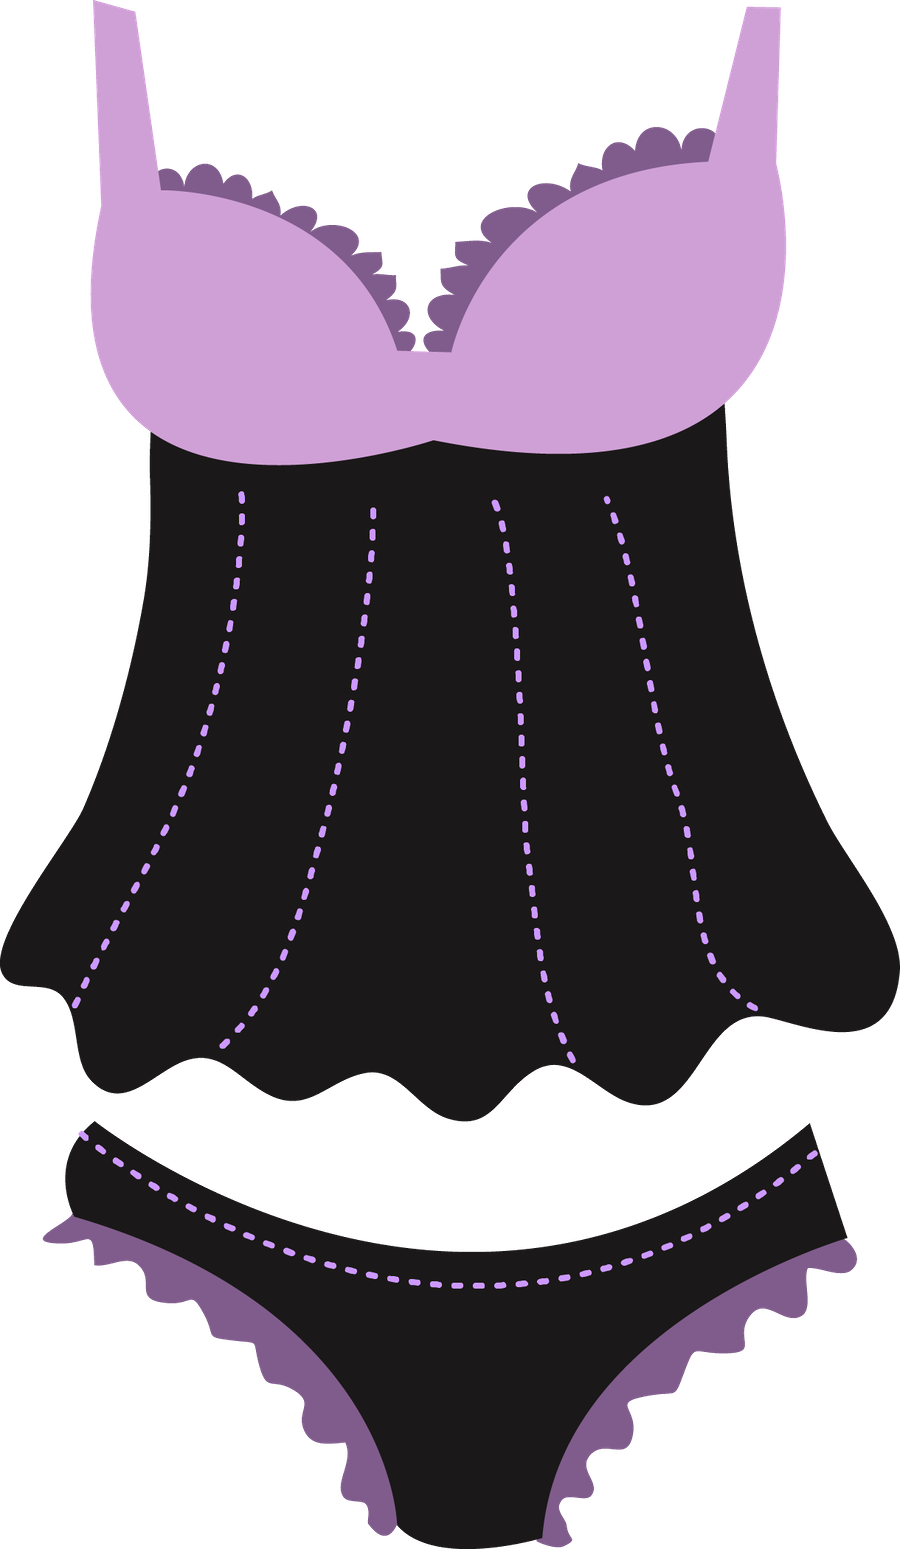 Swimsuit clipart tool. Minus say hello sexy